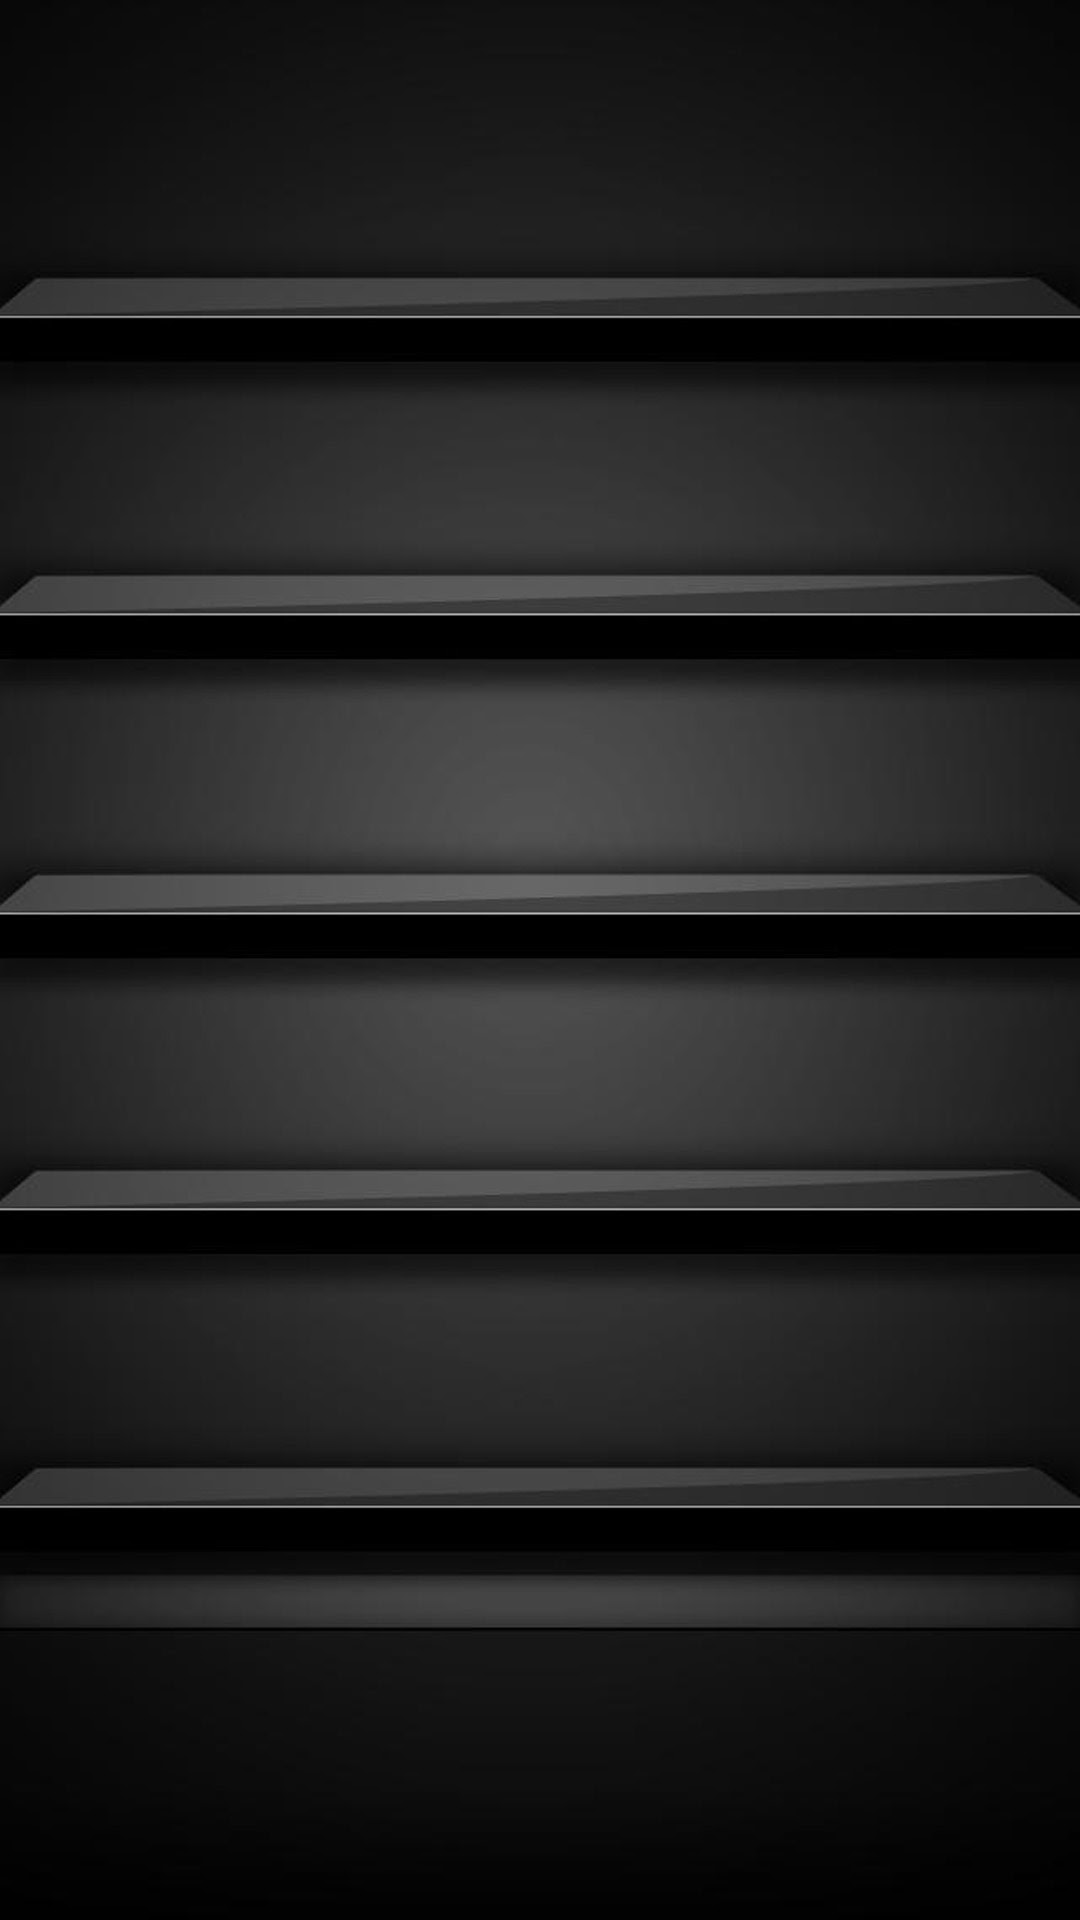 Home Screen Wallpaper (64+ images)